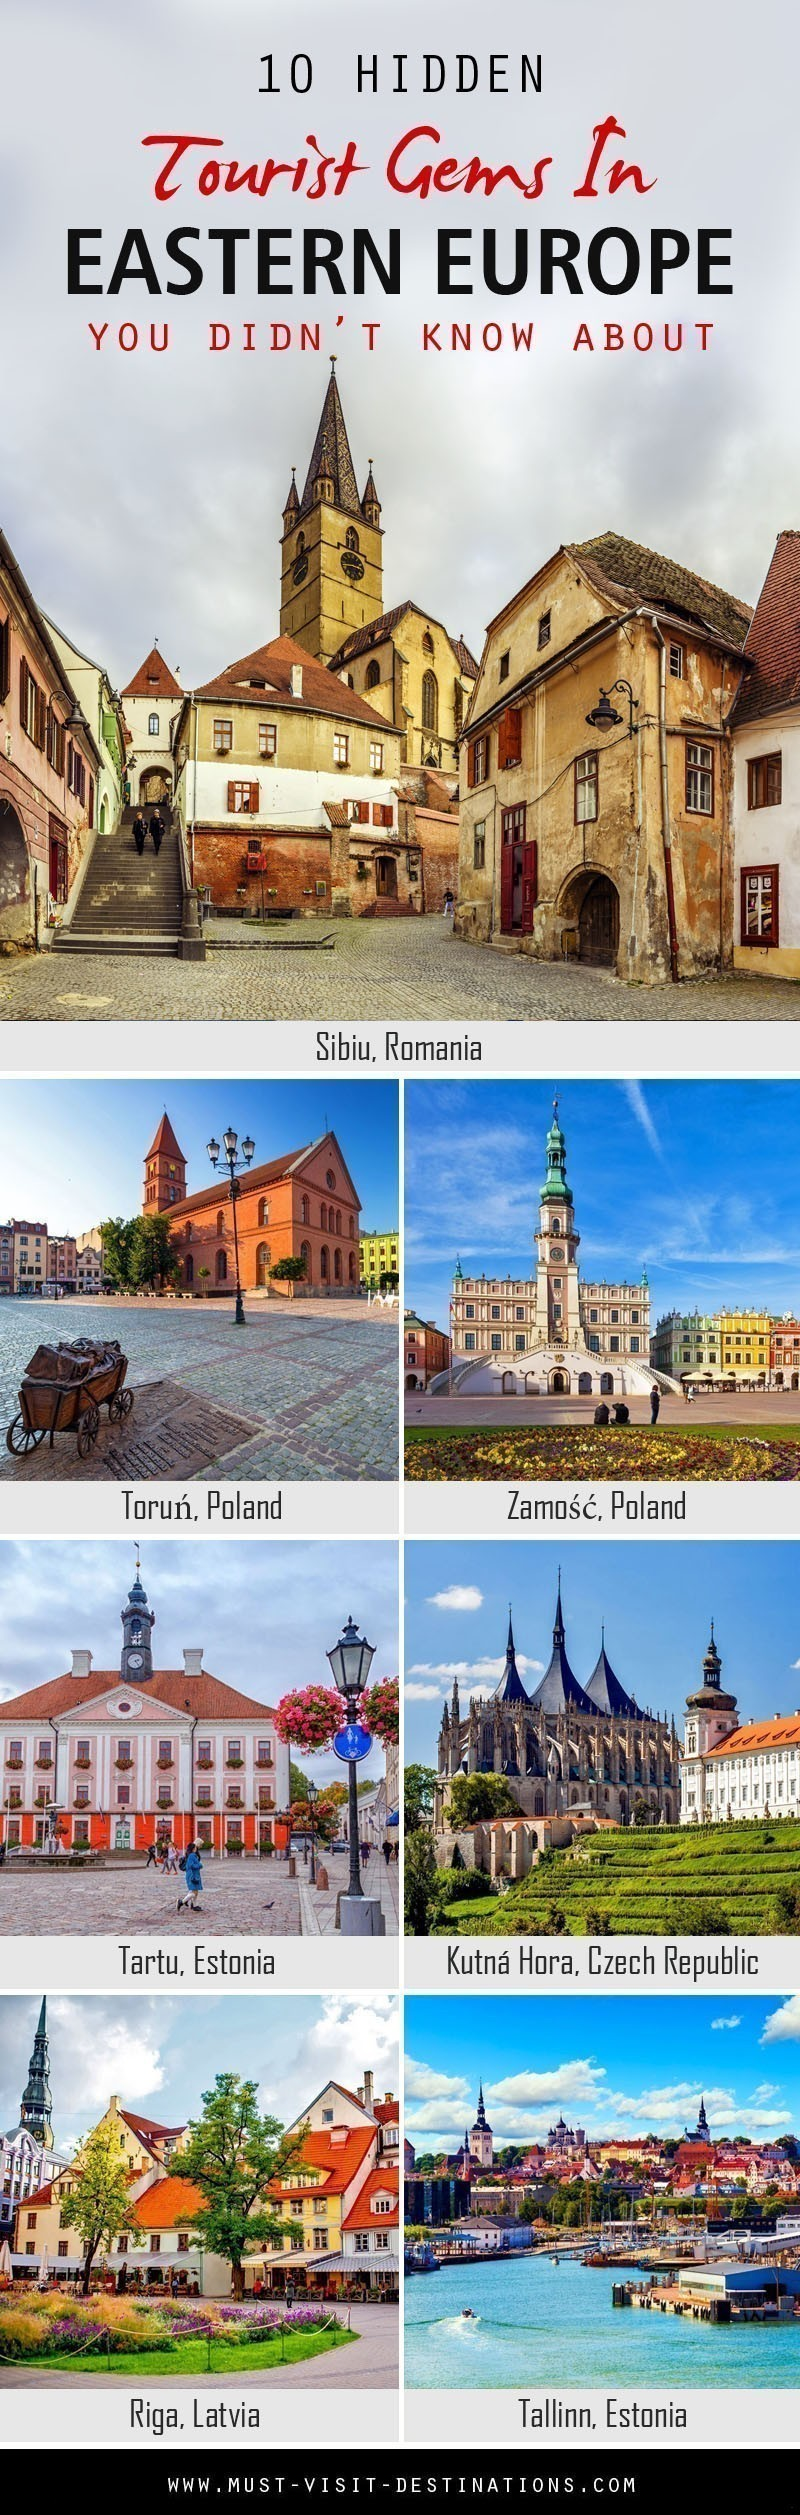 10 Hidden Tourist Gems In Eastern Europe You Didn't Know About #travel